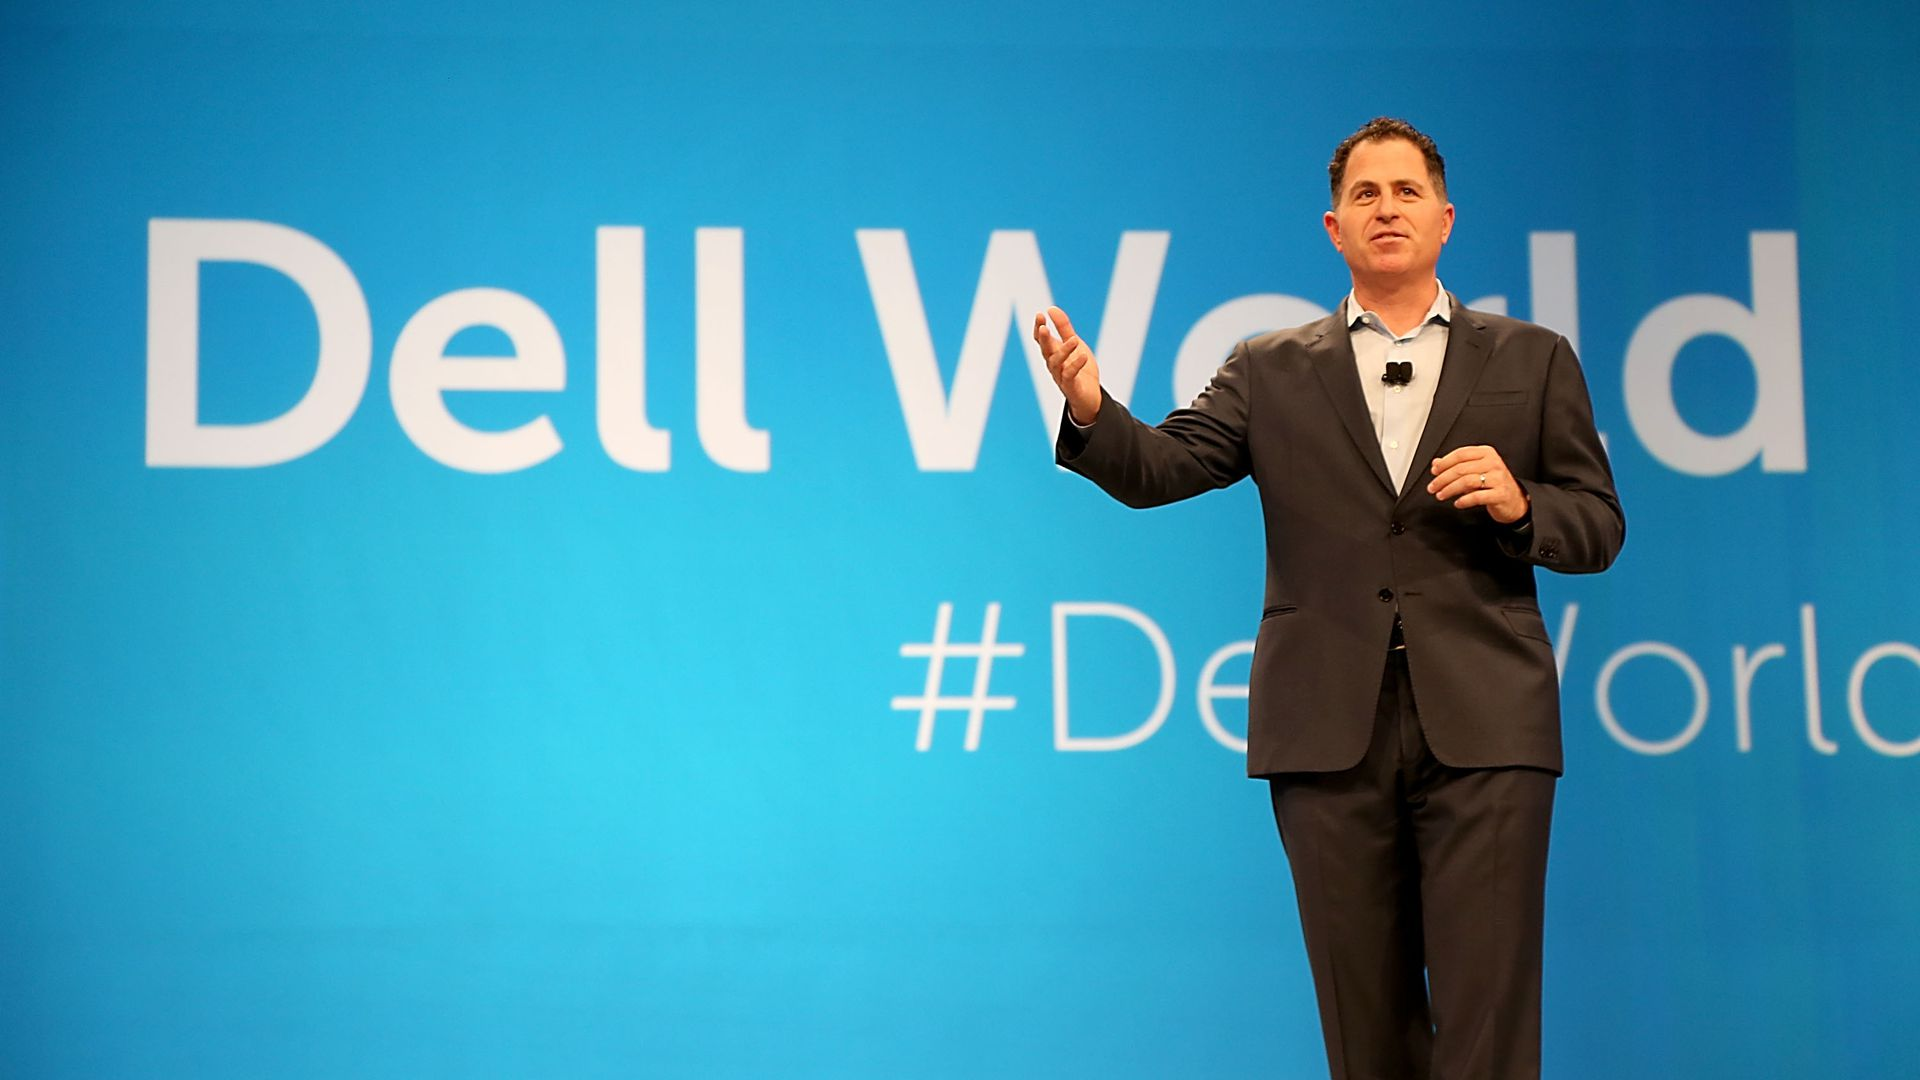 Michael Dell speaking at a company conference.